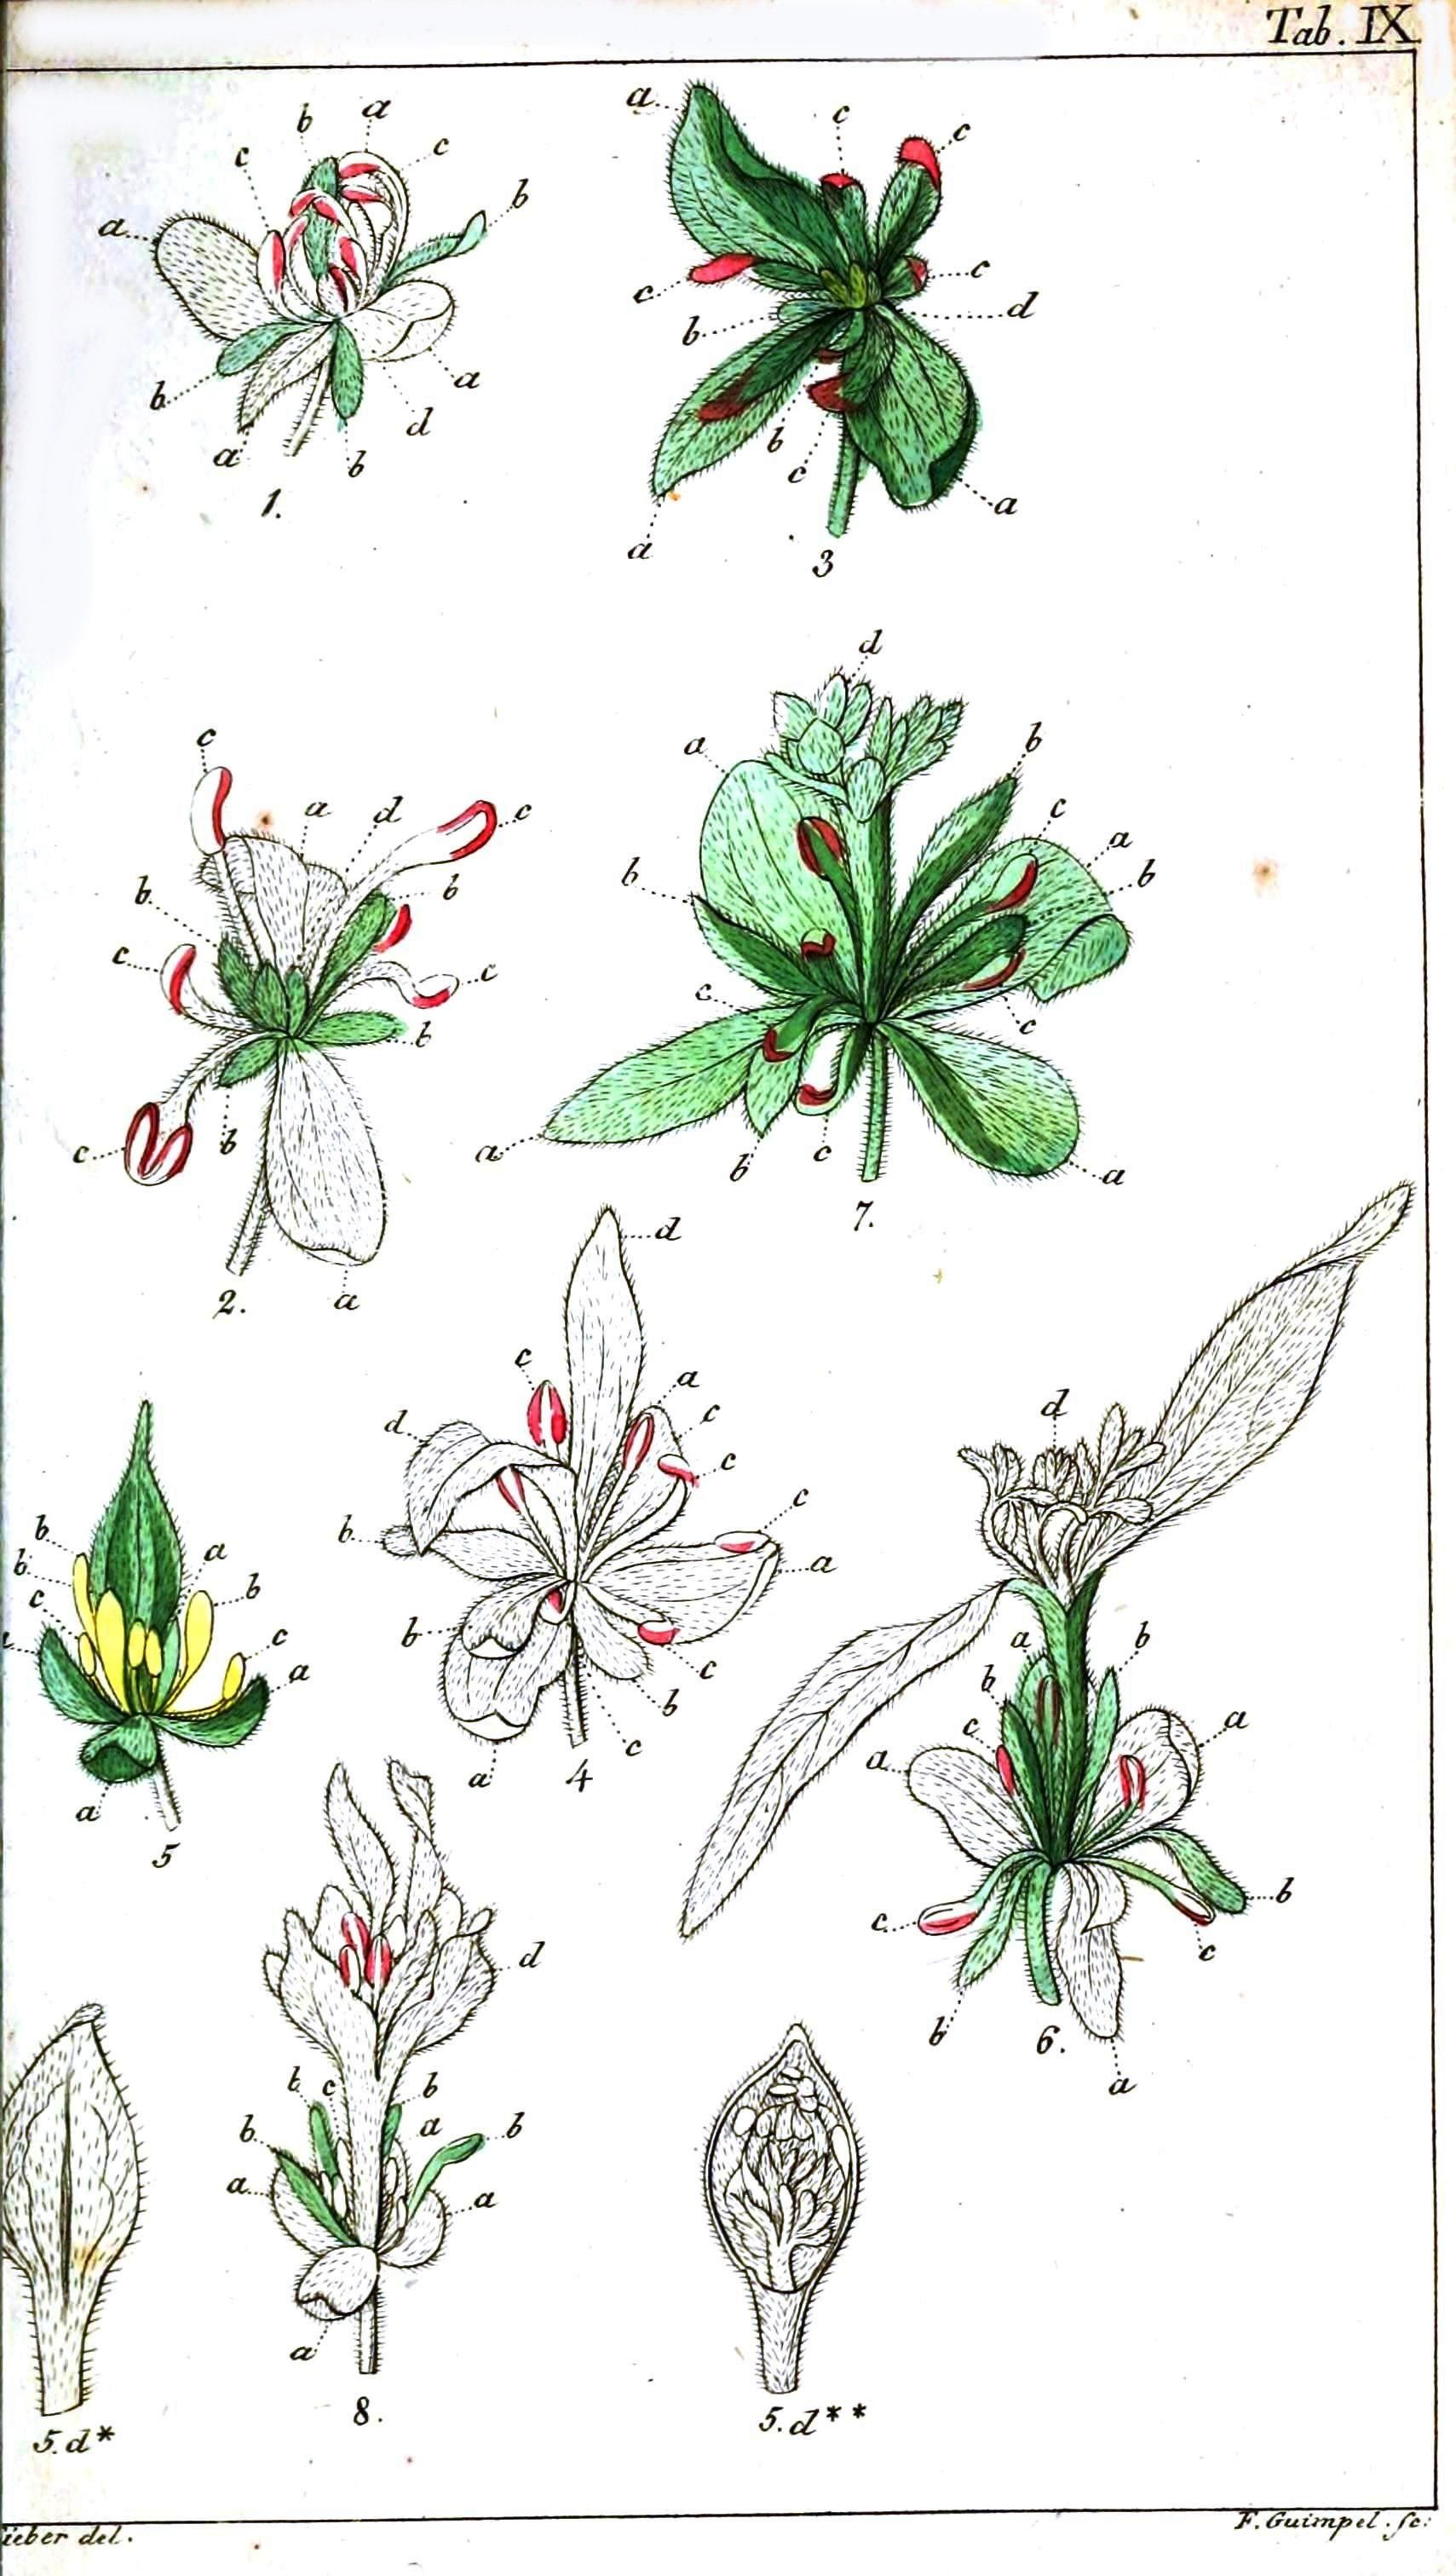 Pin By Emily Hopkins On Pins Needles Pinterest Botanical